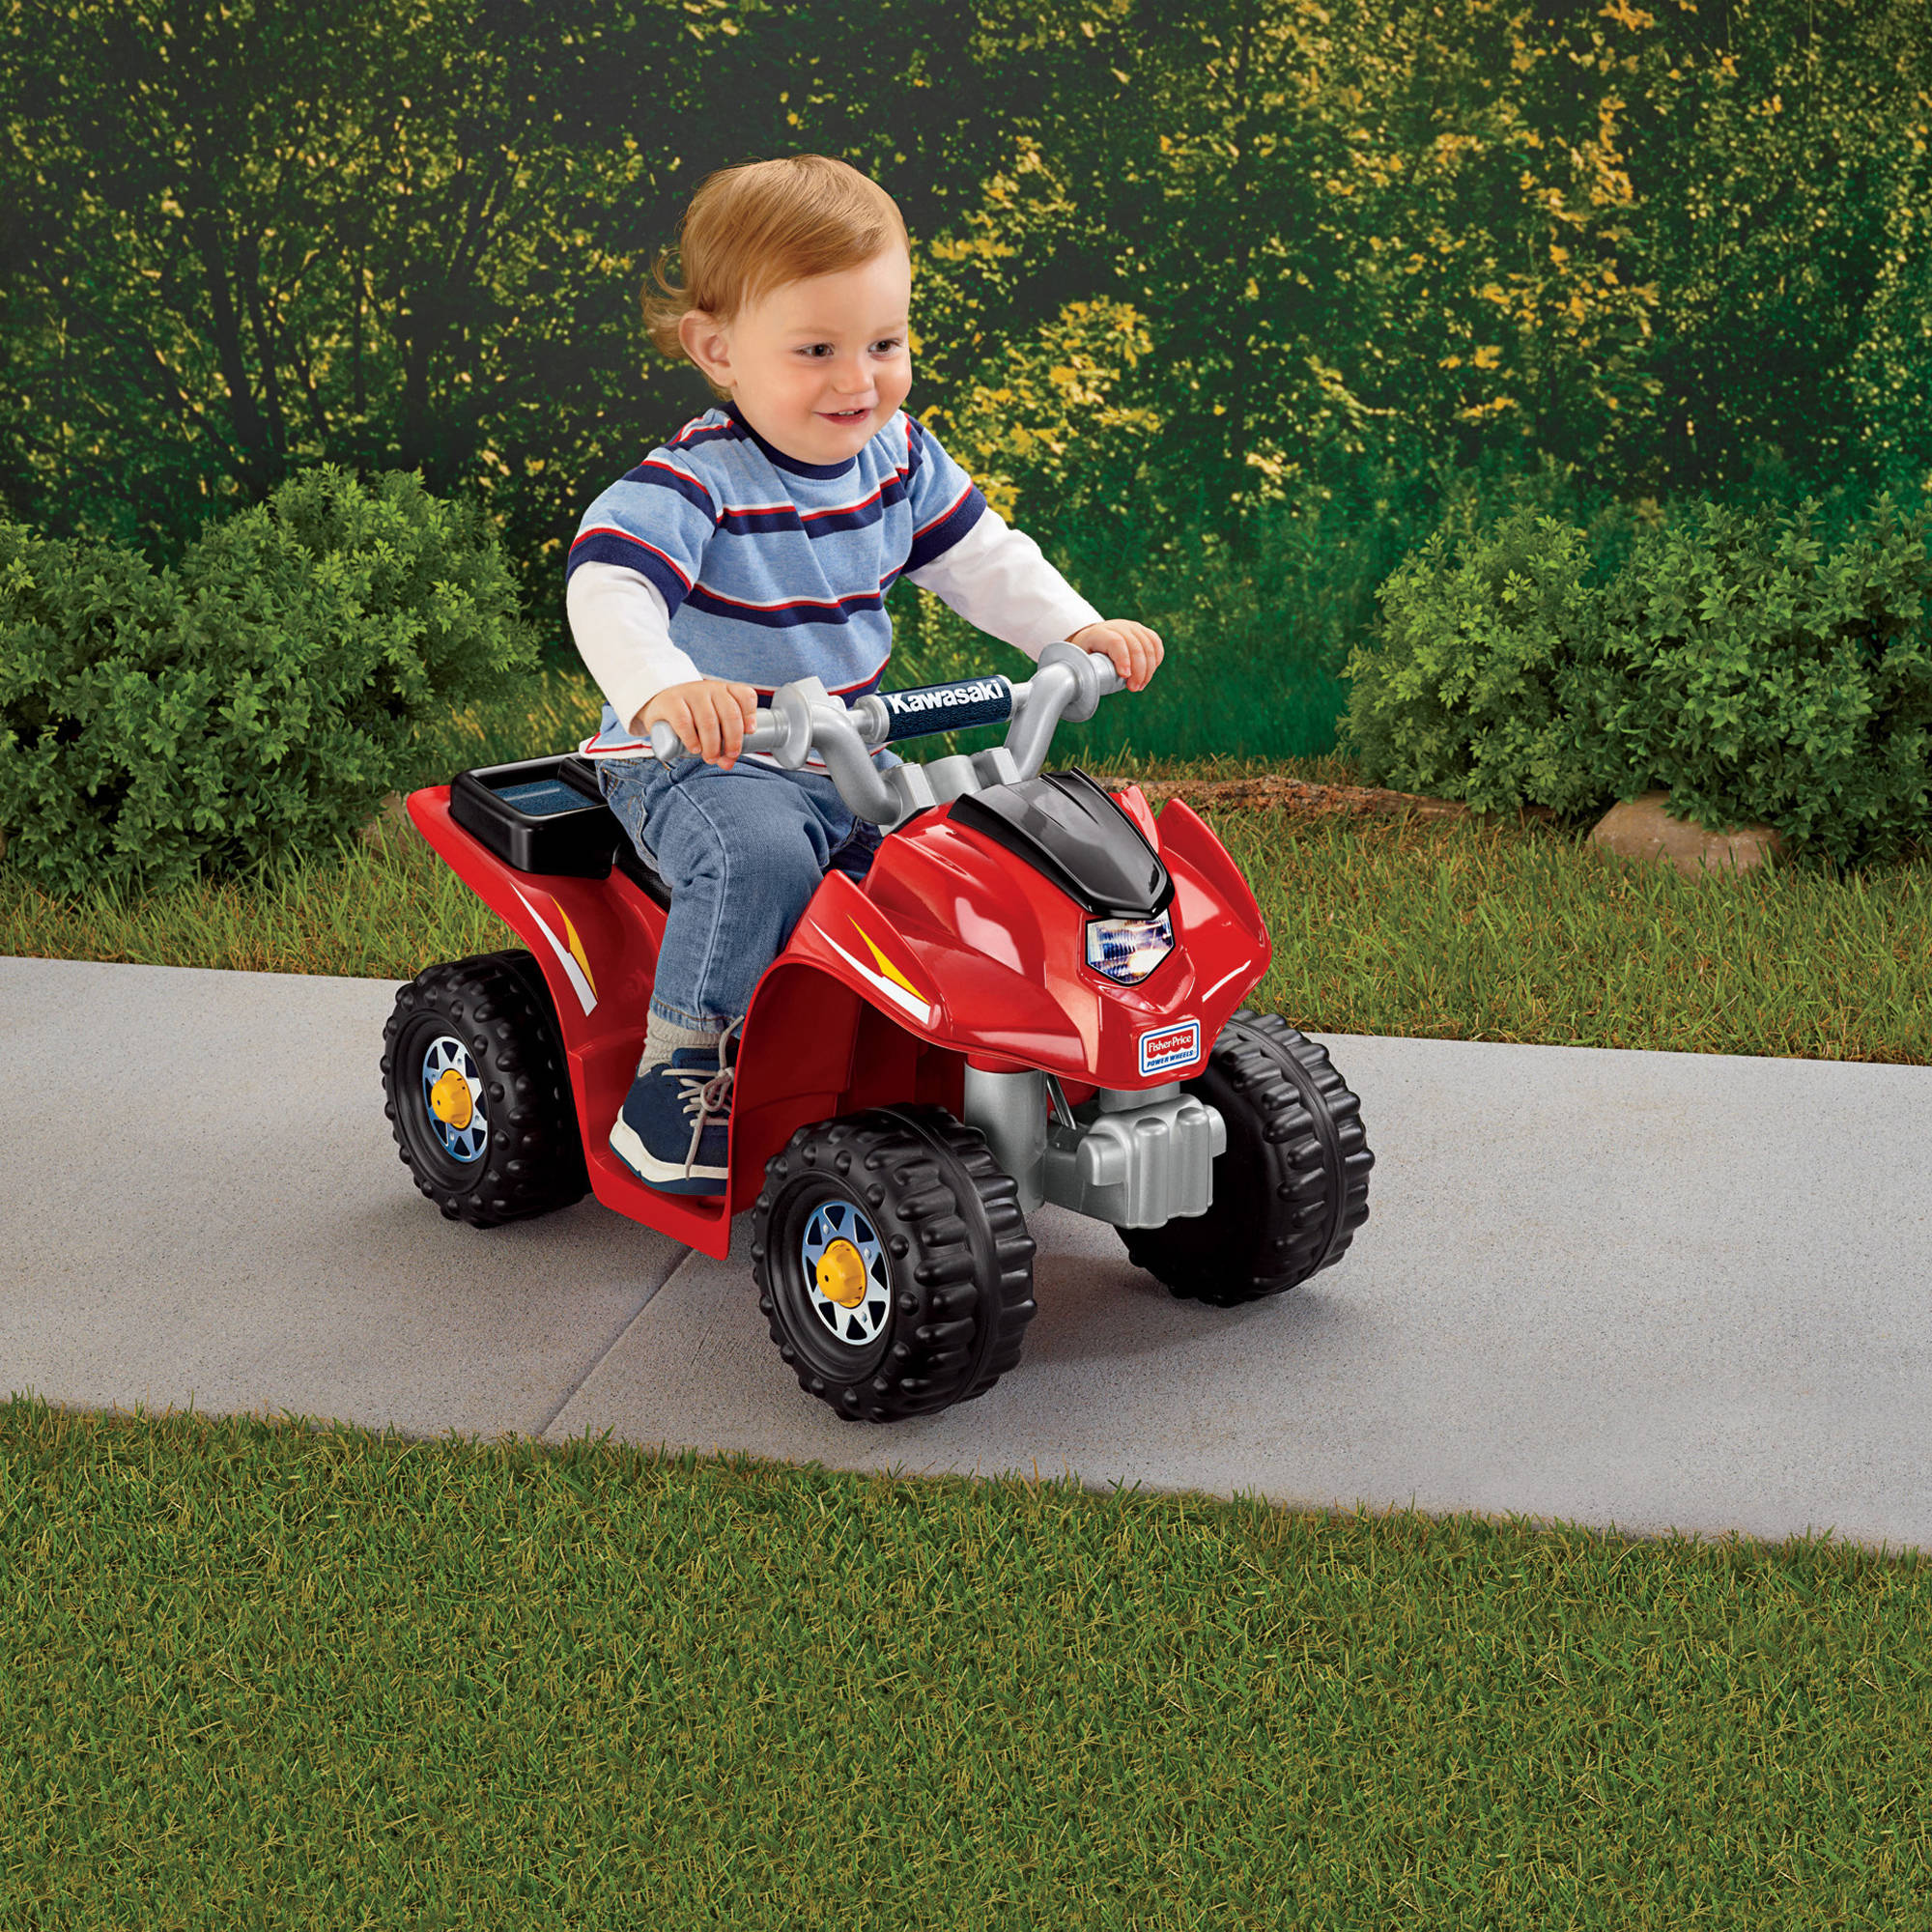 Fisher-Price Power Wheels Lil' Kawasaki 6-Volt Battery-Powered Ride-On